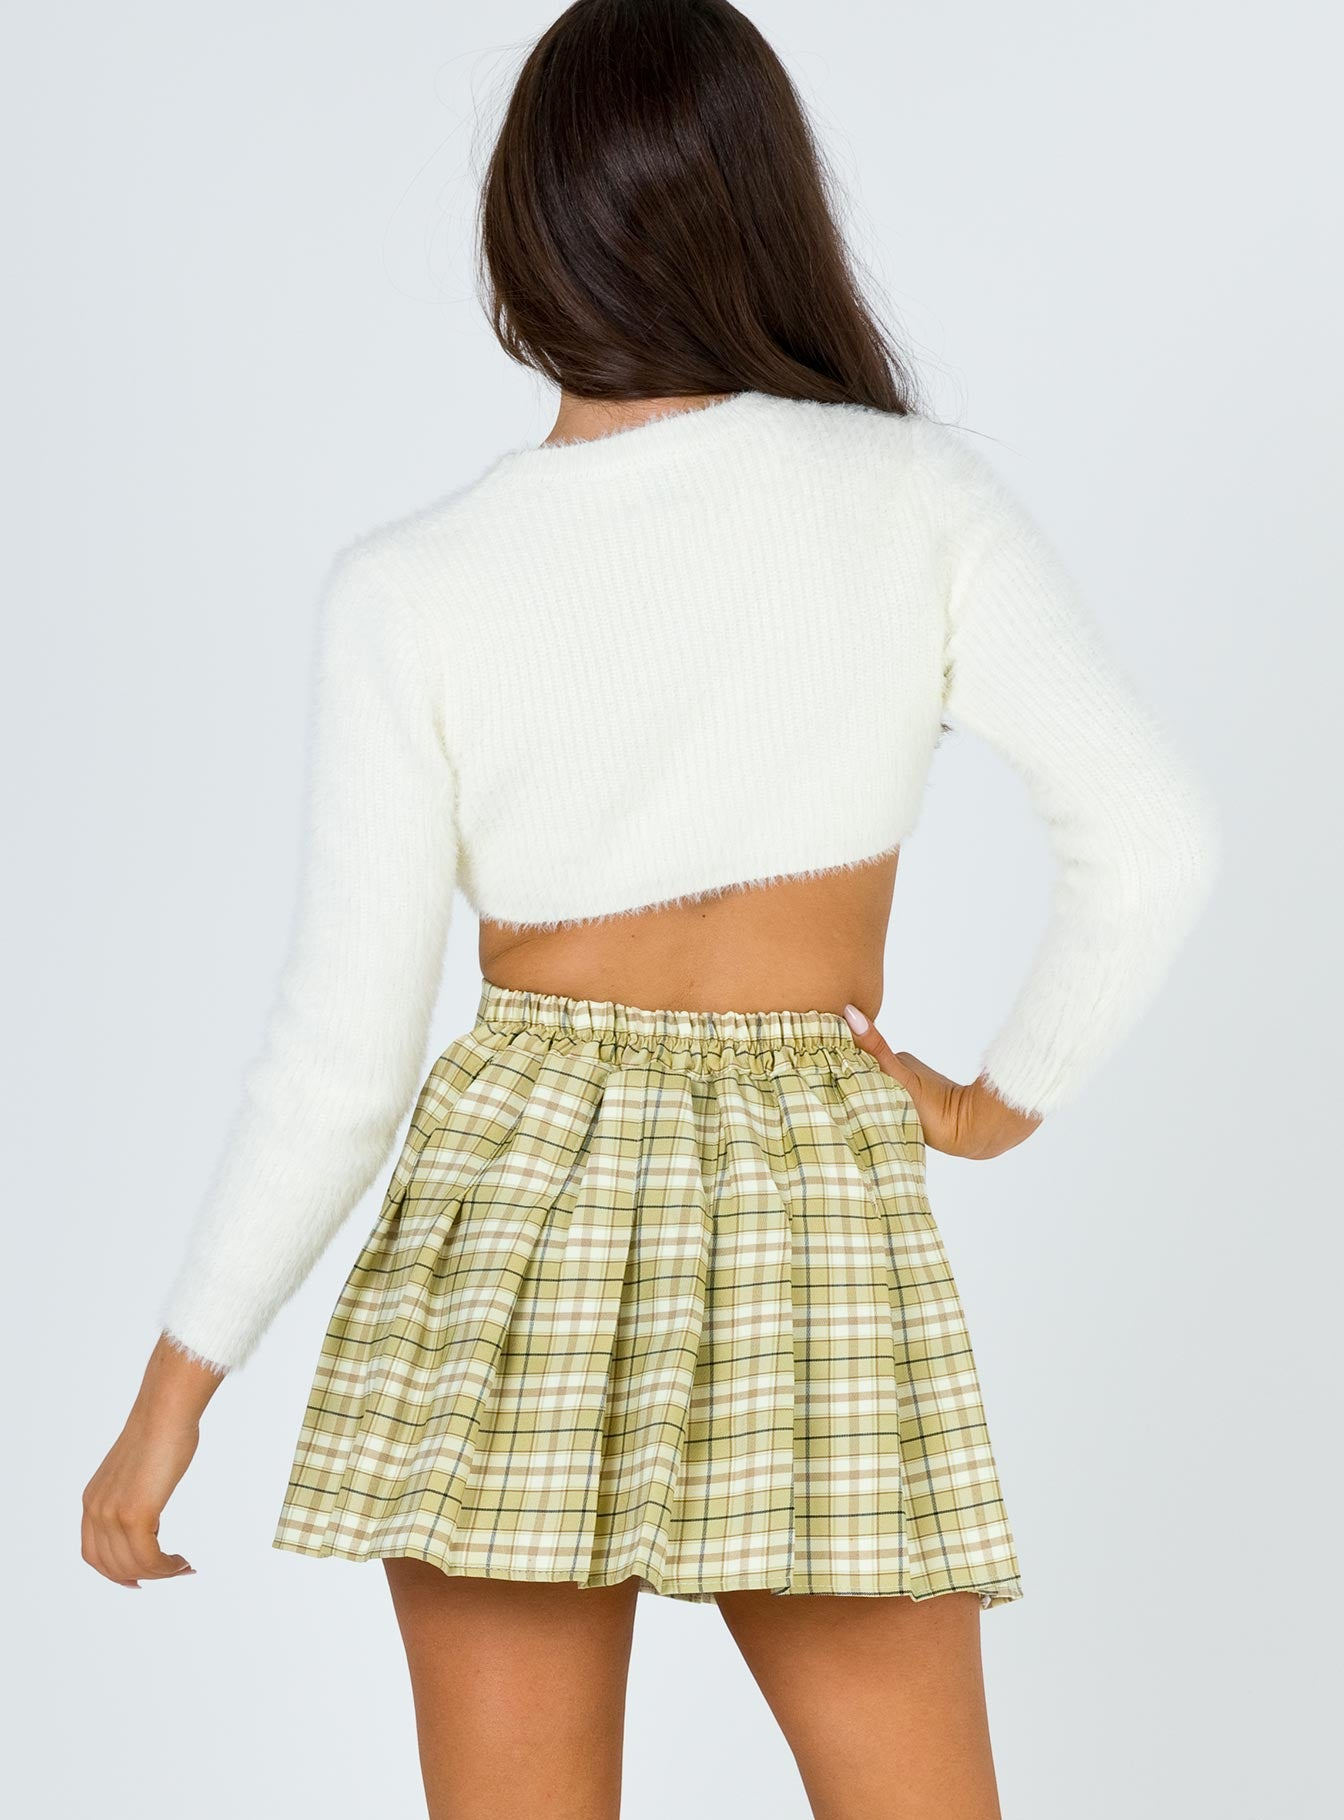 Lona Mini Skirt Green Multi